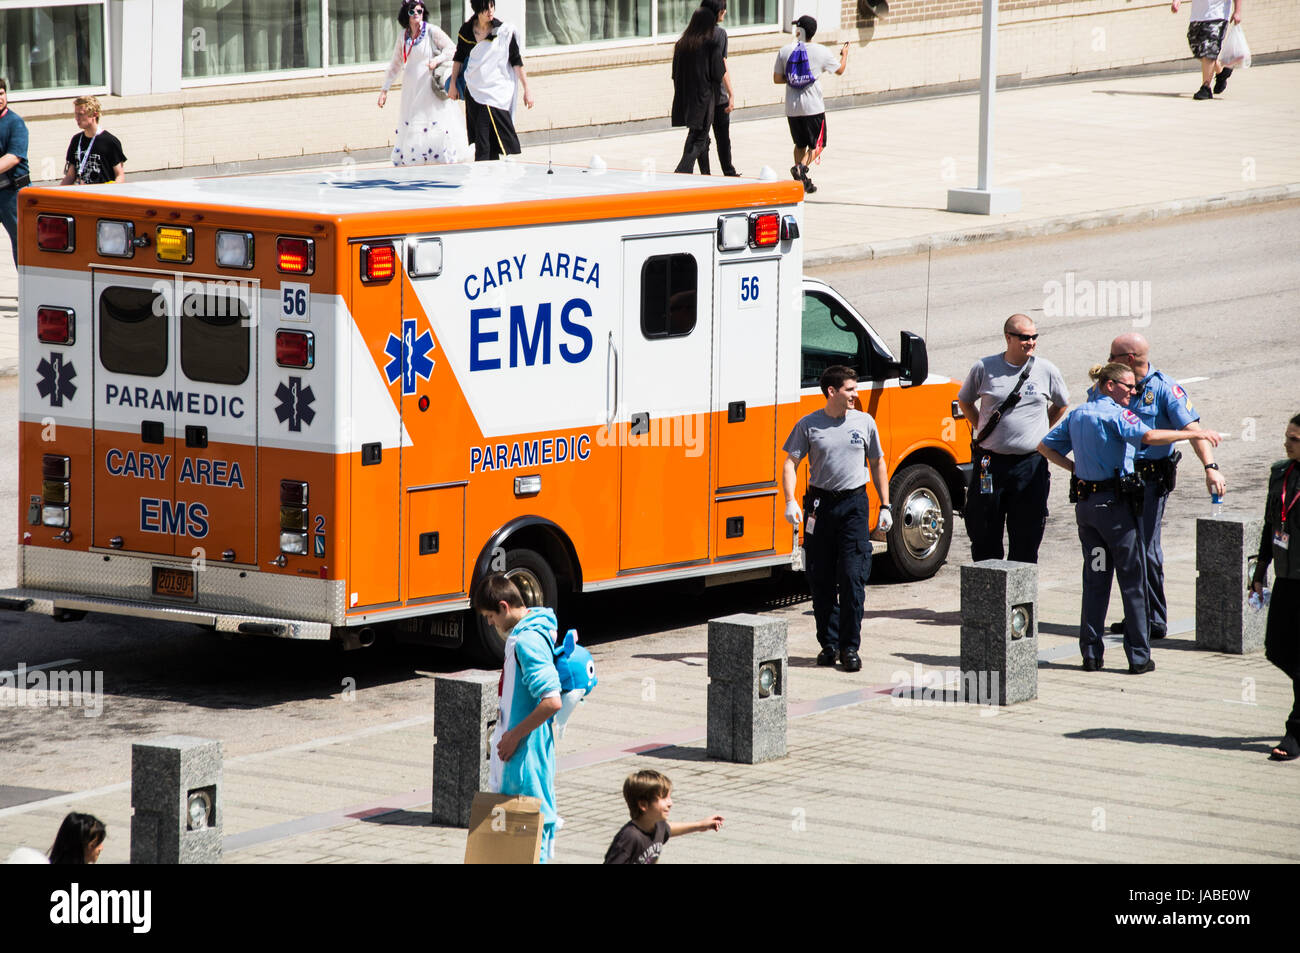 Ambulance At An Anime Convention